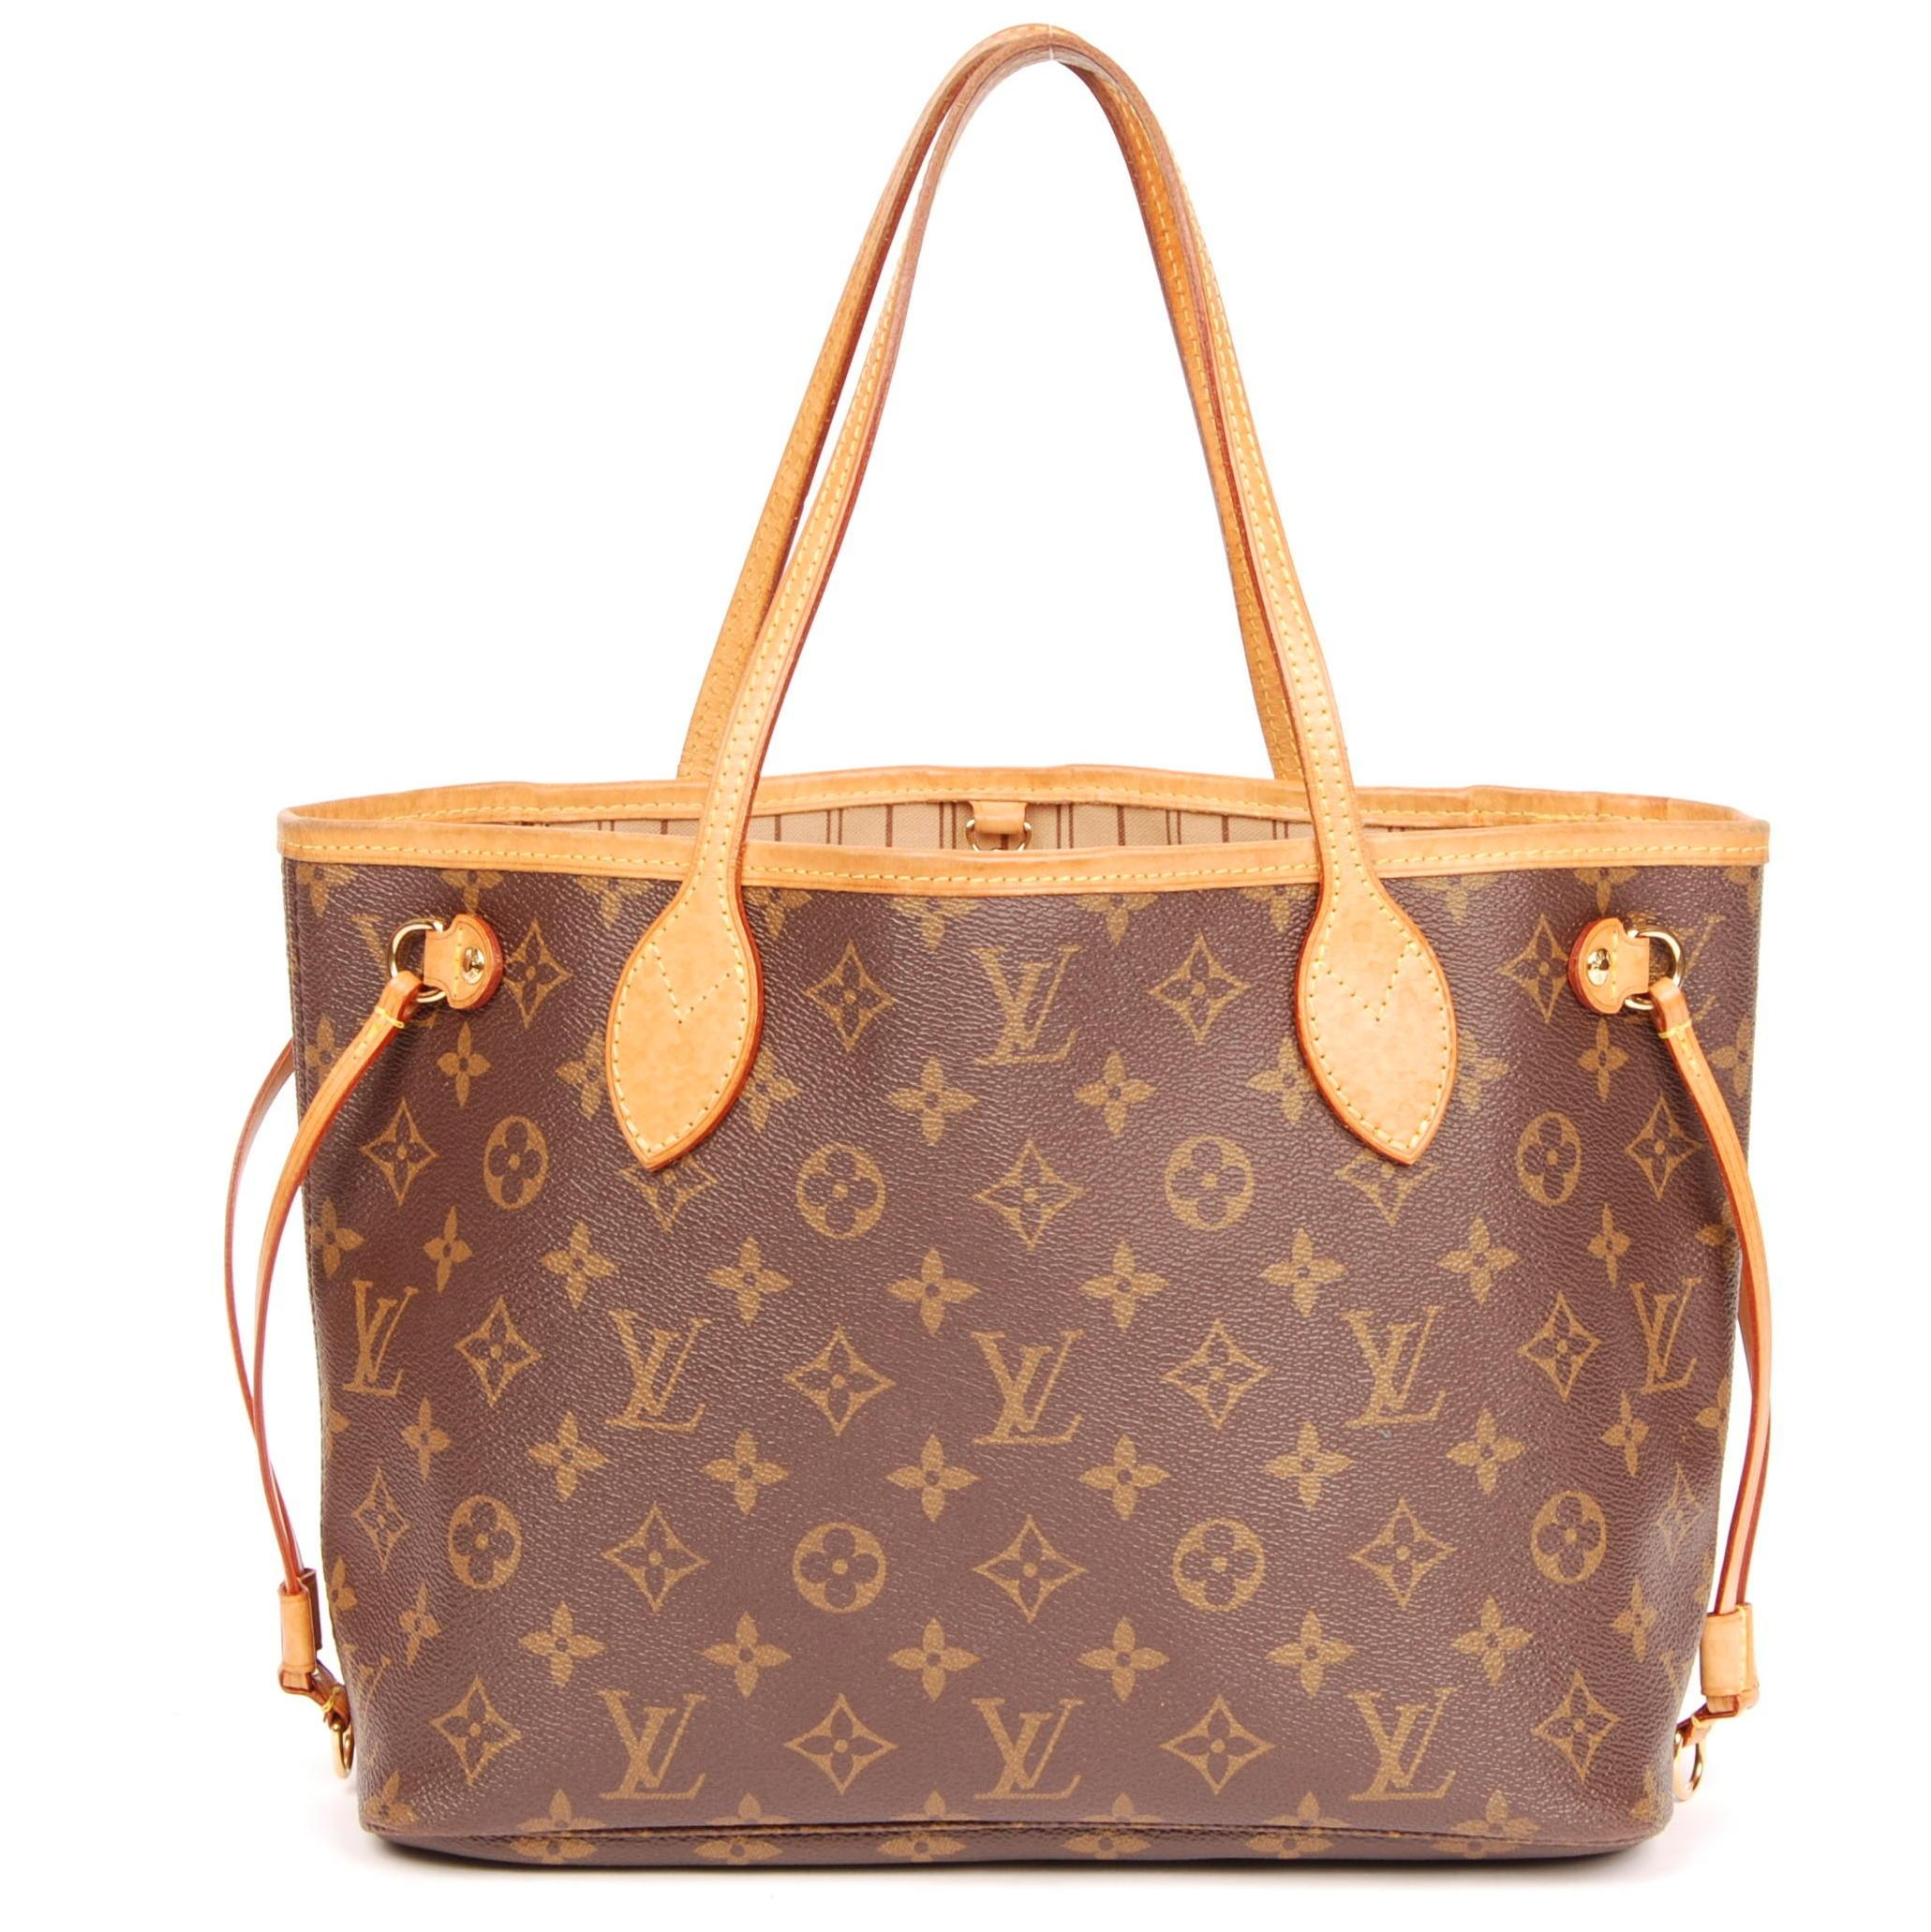 Louis Vuitton Totes - Up to 70% off at Tradesy